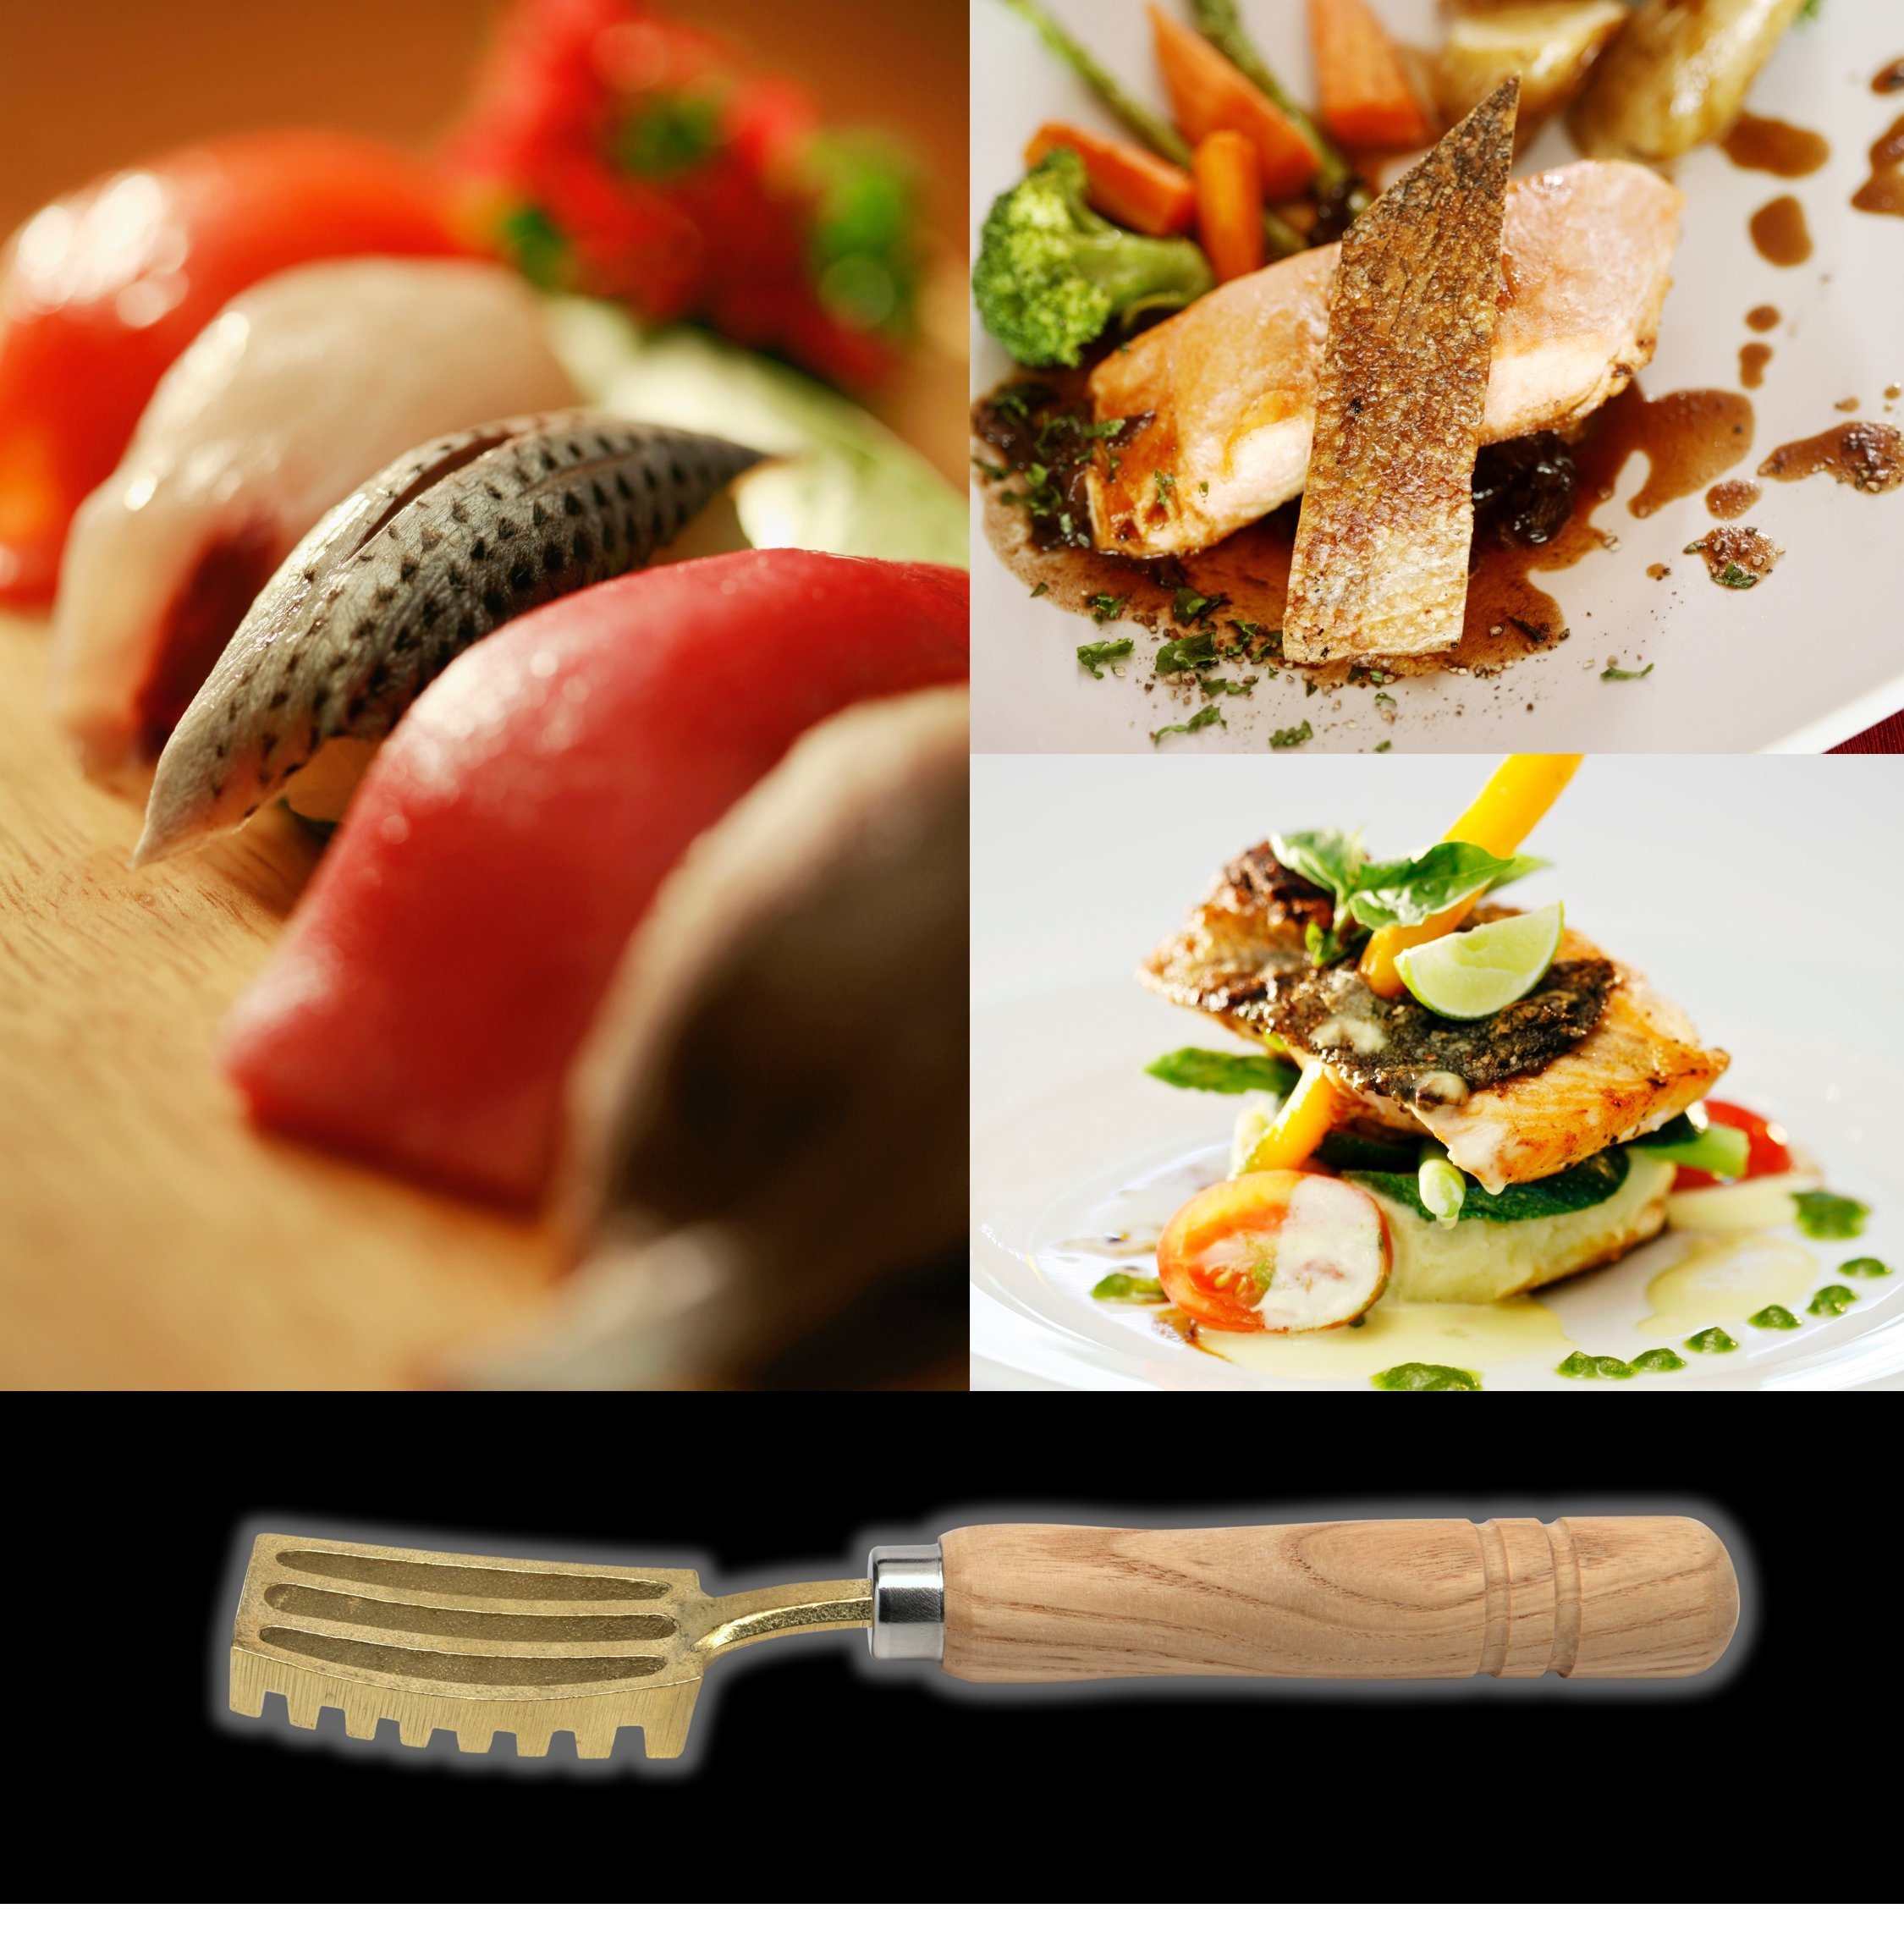 Kwizing Made in Japan Fish Scaler Brush with Brass Serrated Sawtooth and Ergonomic Wooden Handle - Easily Remove Fish Scales Without Fuss Or Mess - Handcrafted by Japanese Artisans by Kwizing (Image #5)